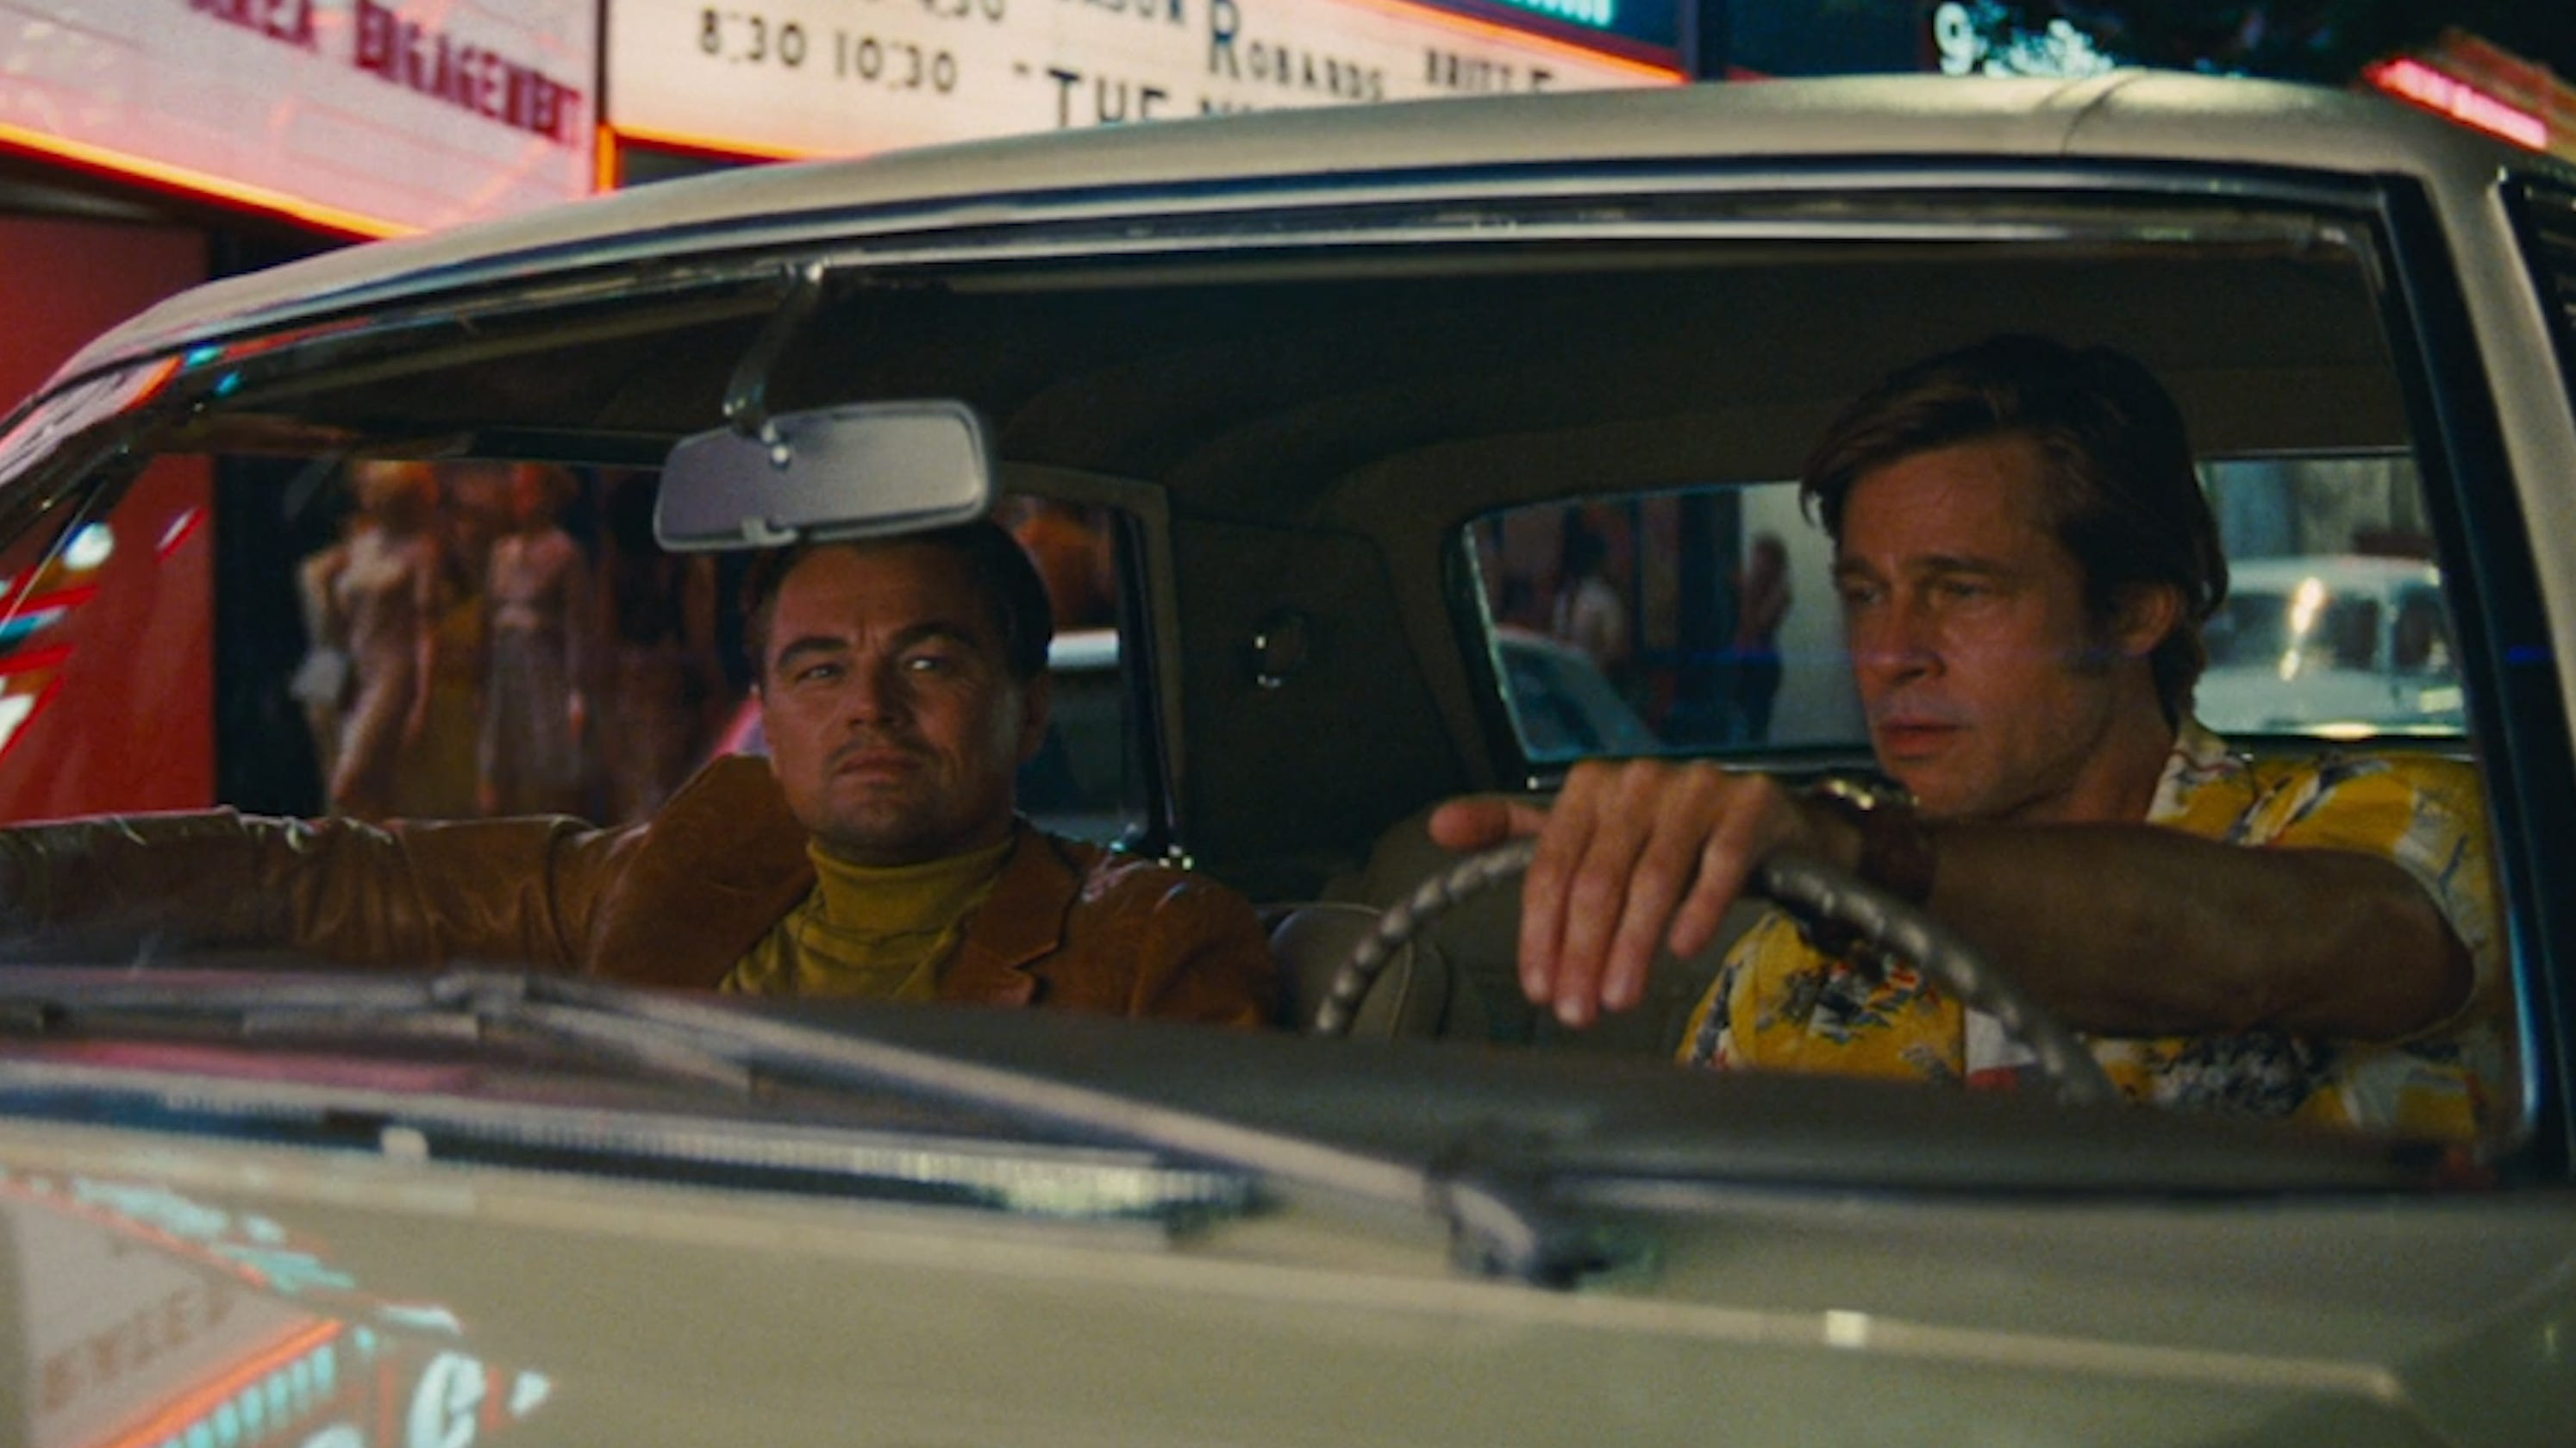 'Once Upon a Time in Hollywood': First reactions praise